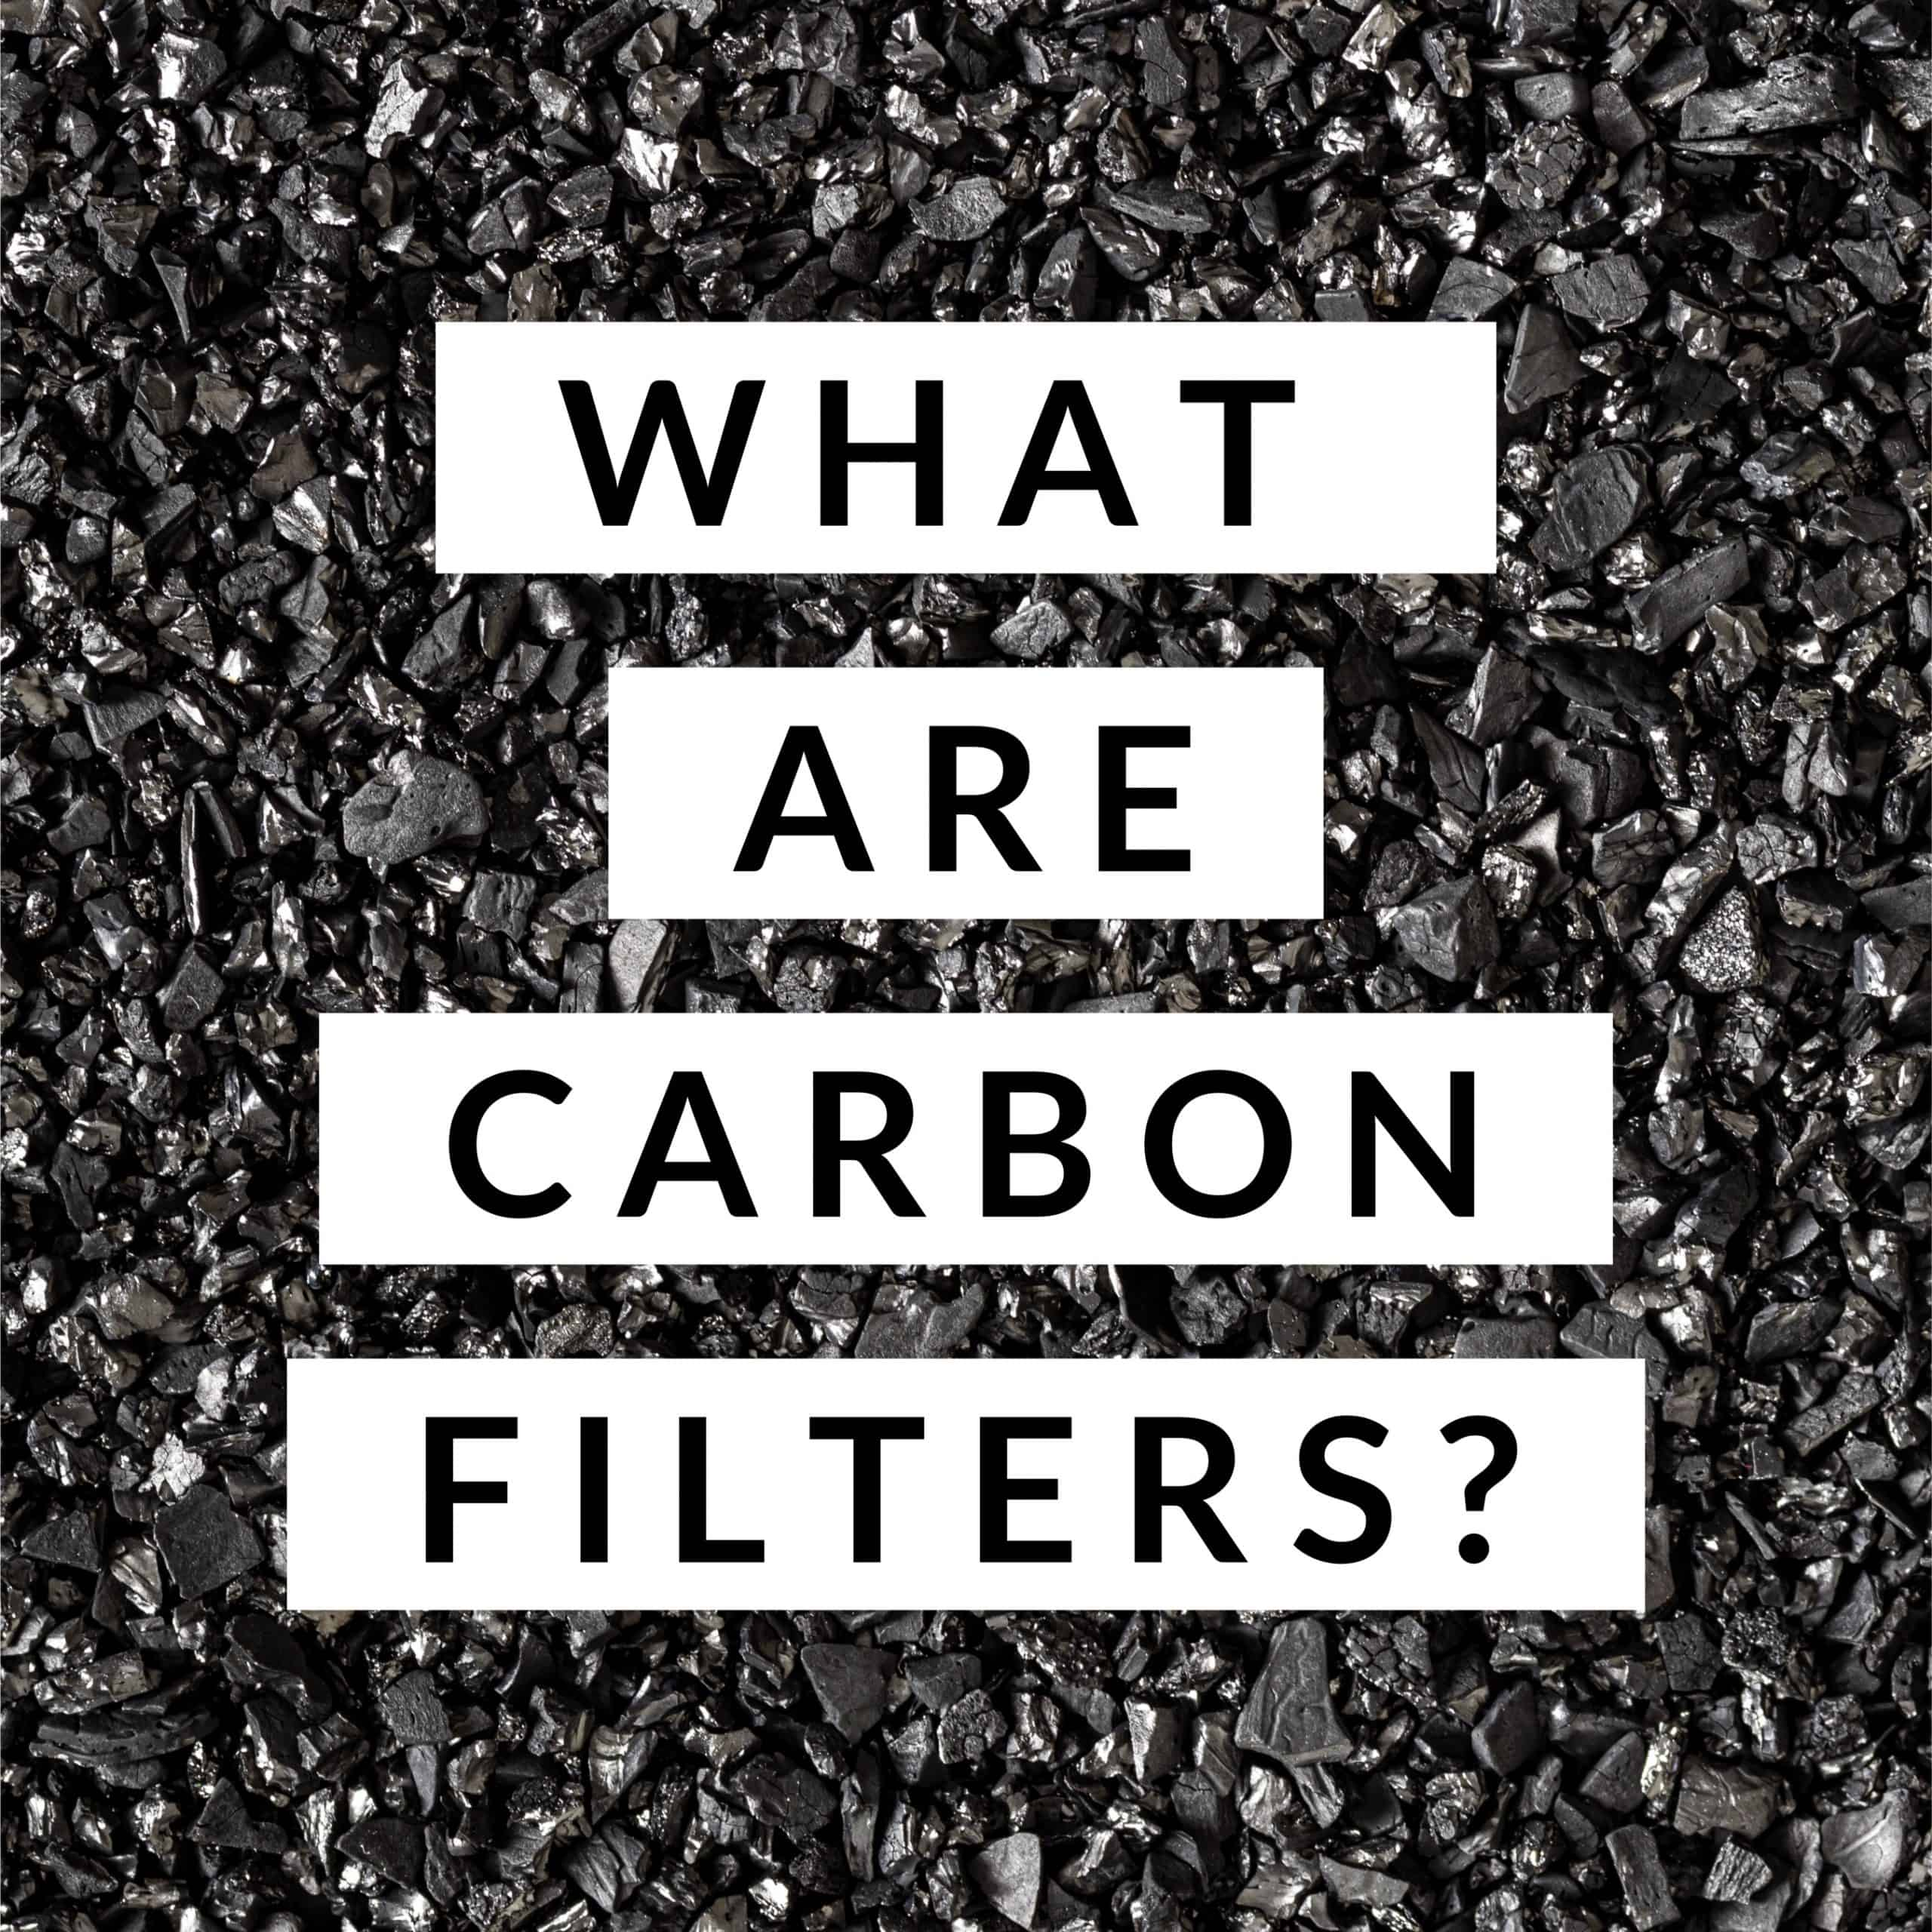 Water filtration using carbon filters: What are carbon filters?